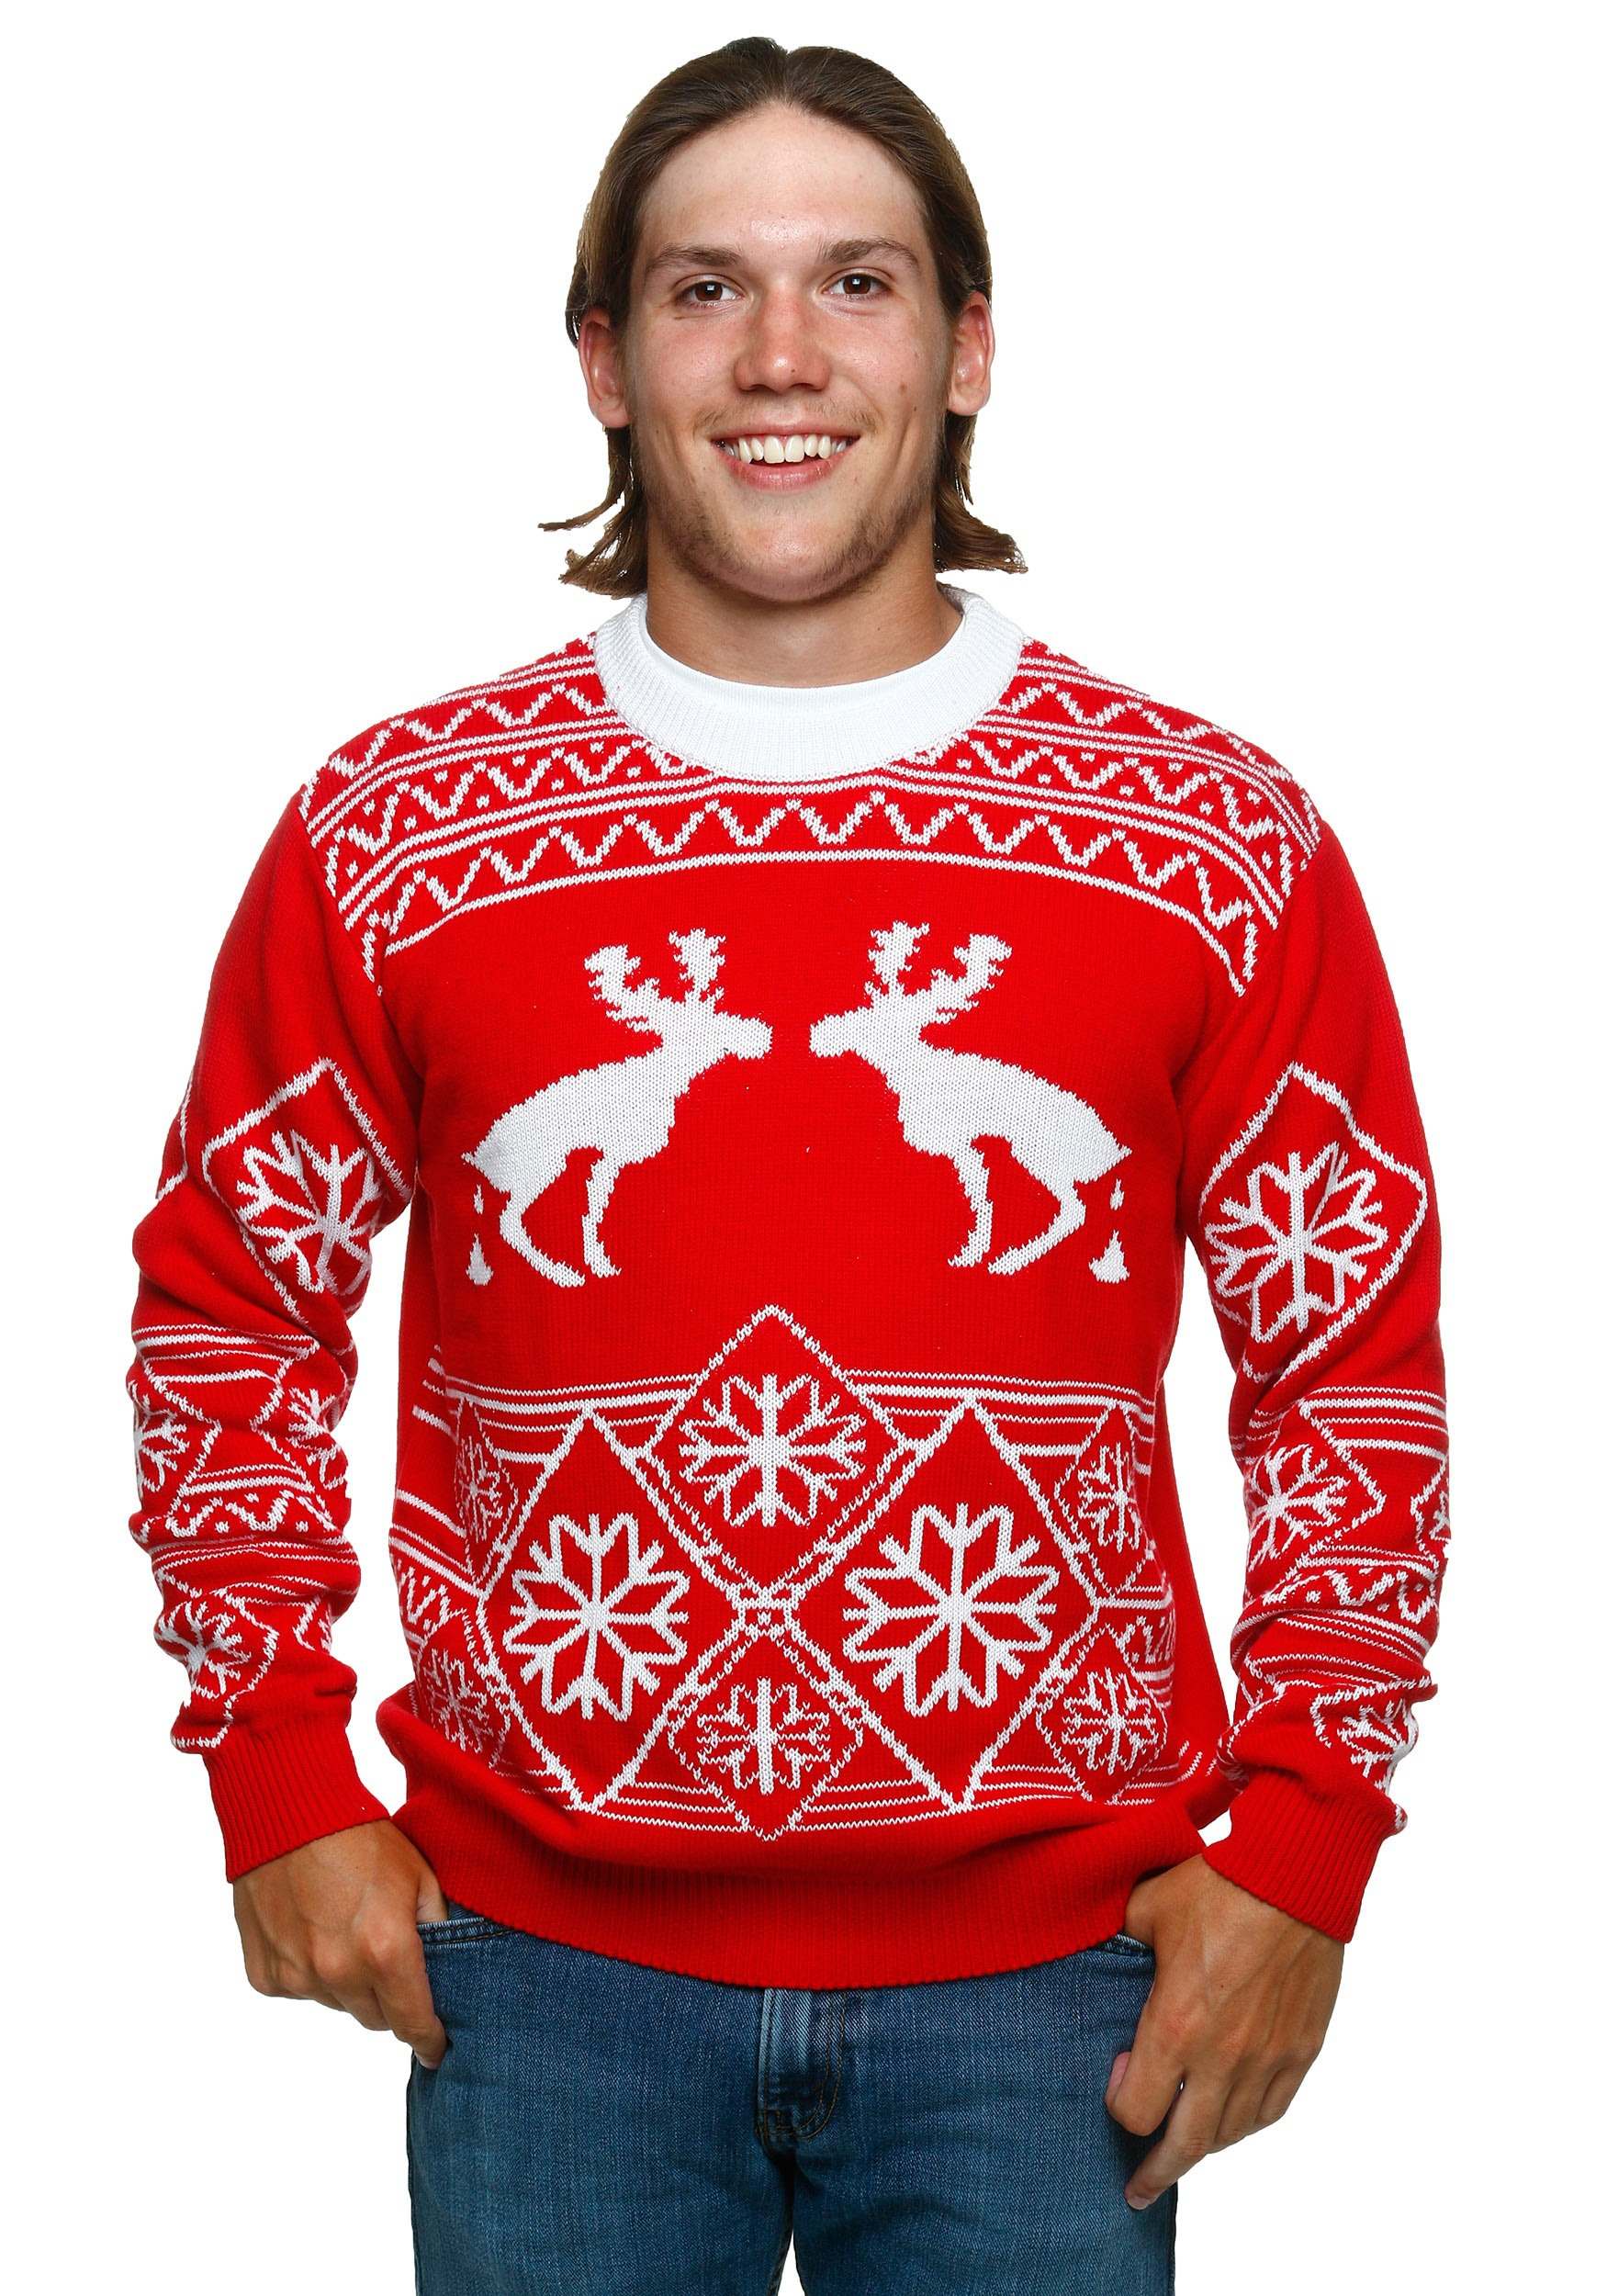 Christmas tacky sweater ideas